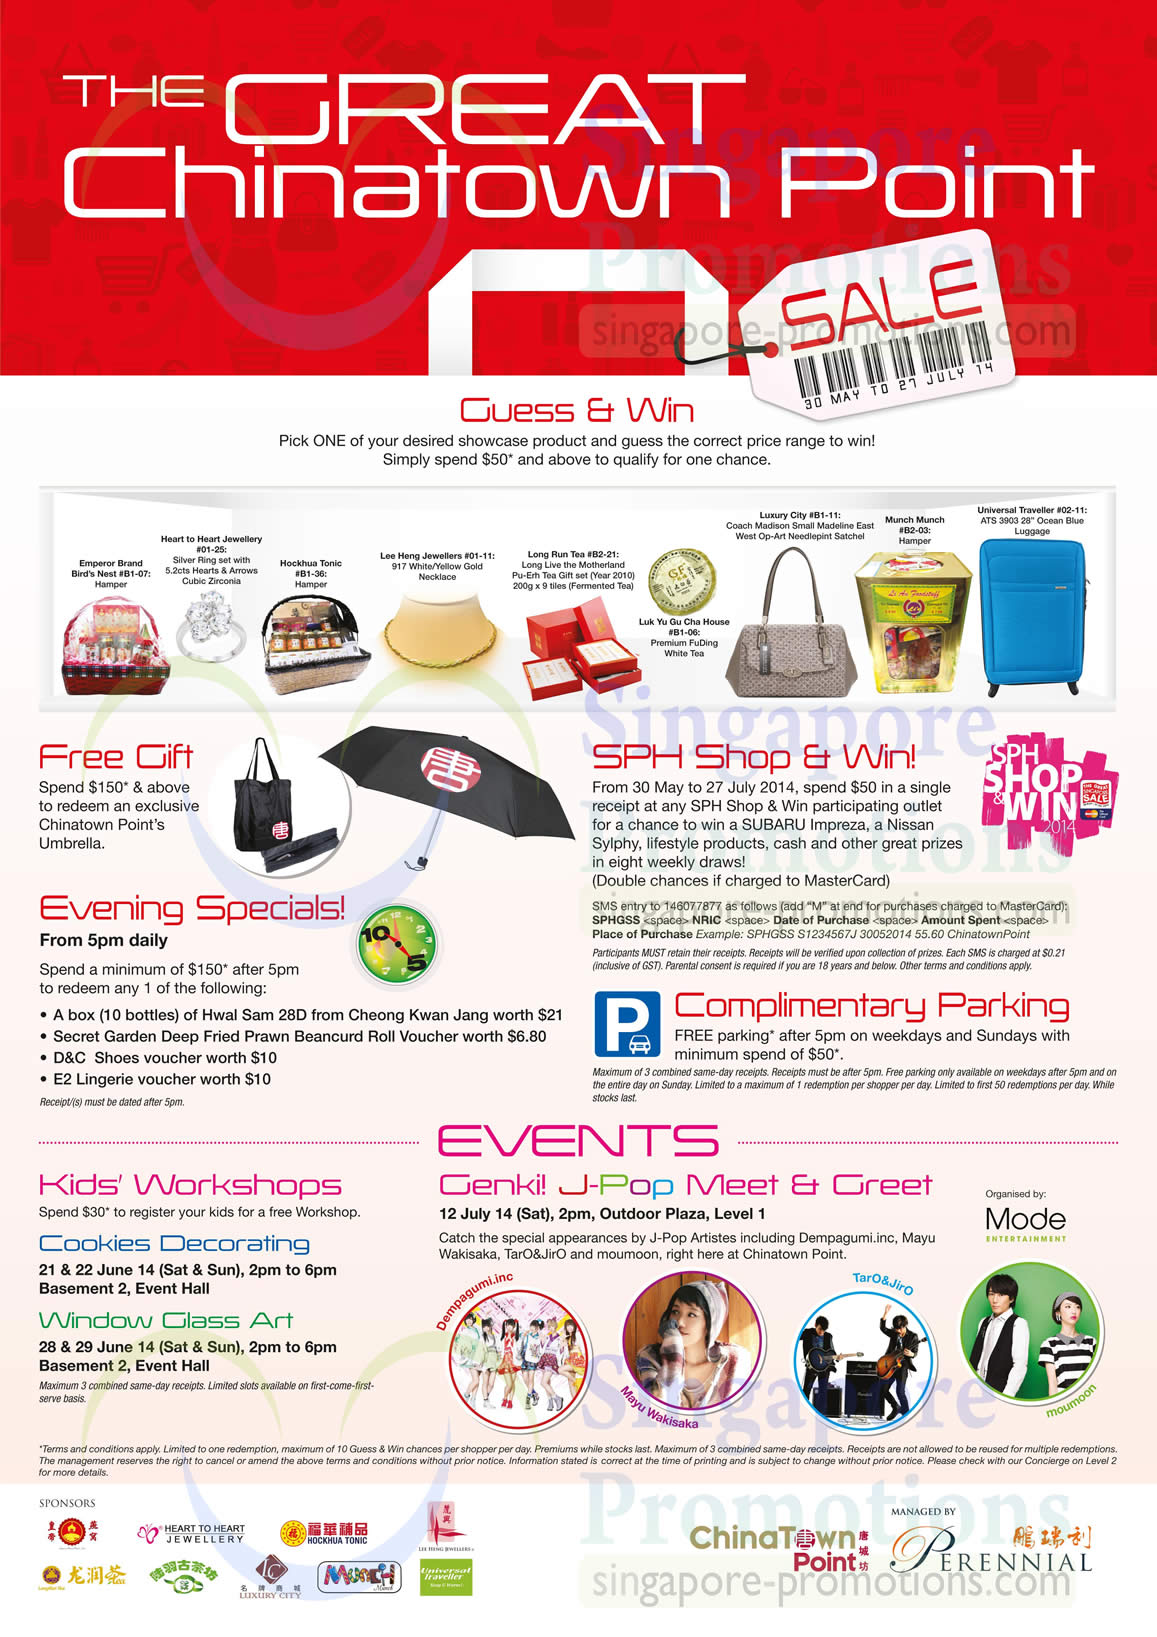 Guess n Win, Free Gift, Free Parking, Evening Specials, Kids Workshop, Genki J-Pop Meet n Greet